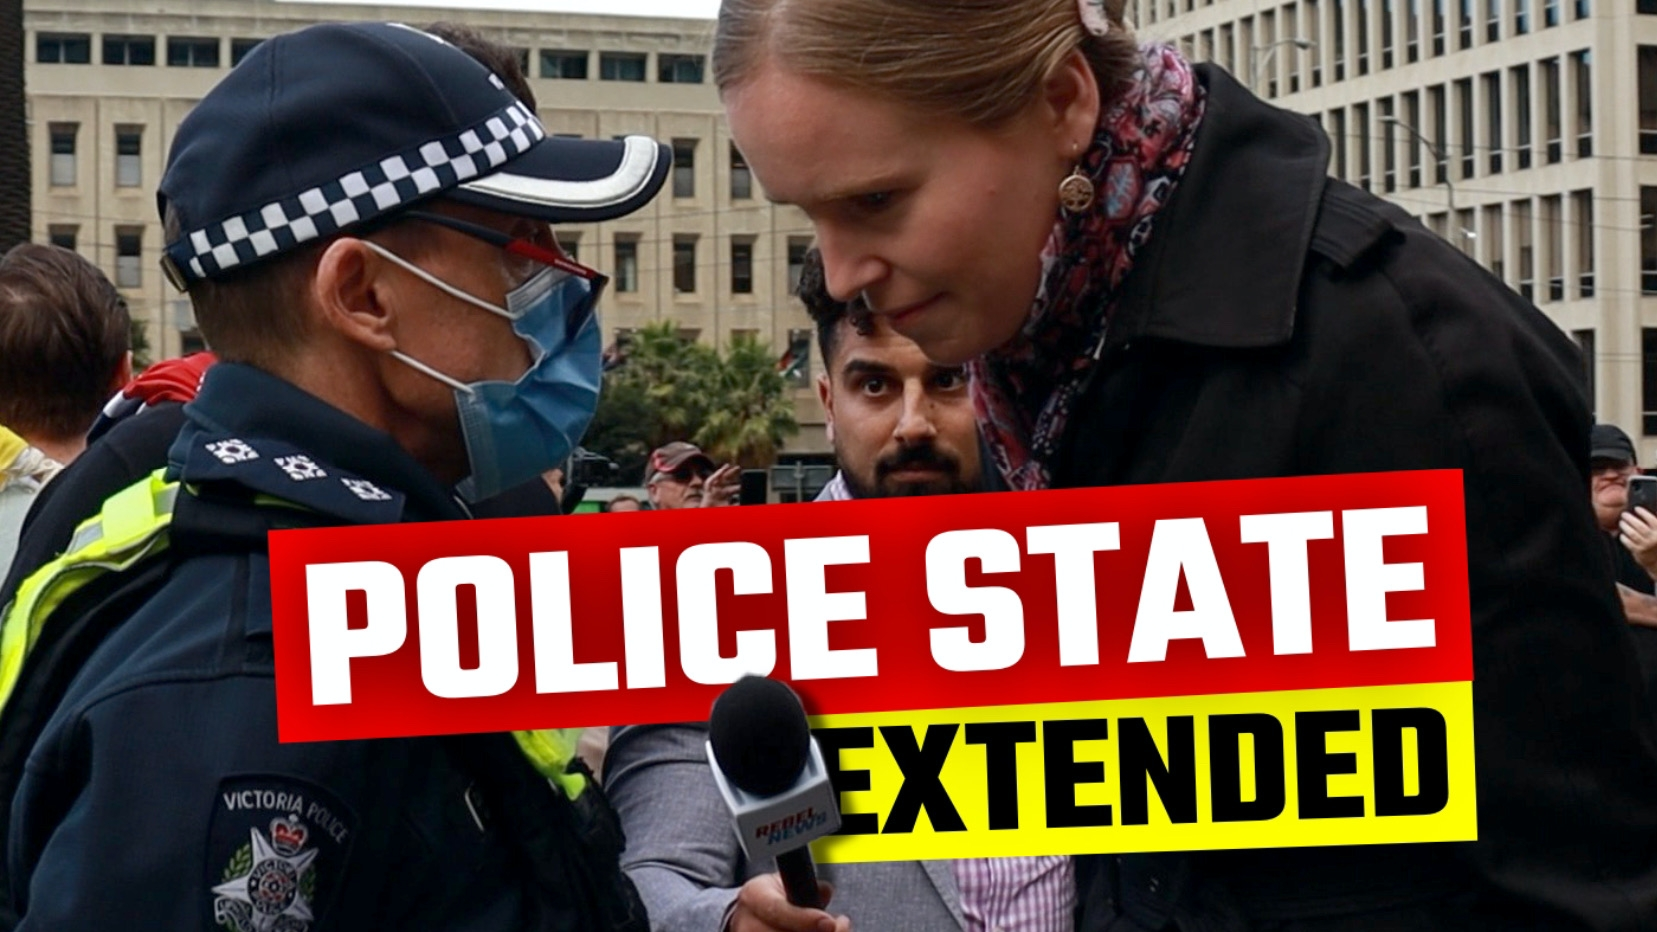 This is what happened at the State of Emergency protest in Melbourne